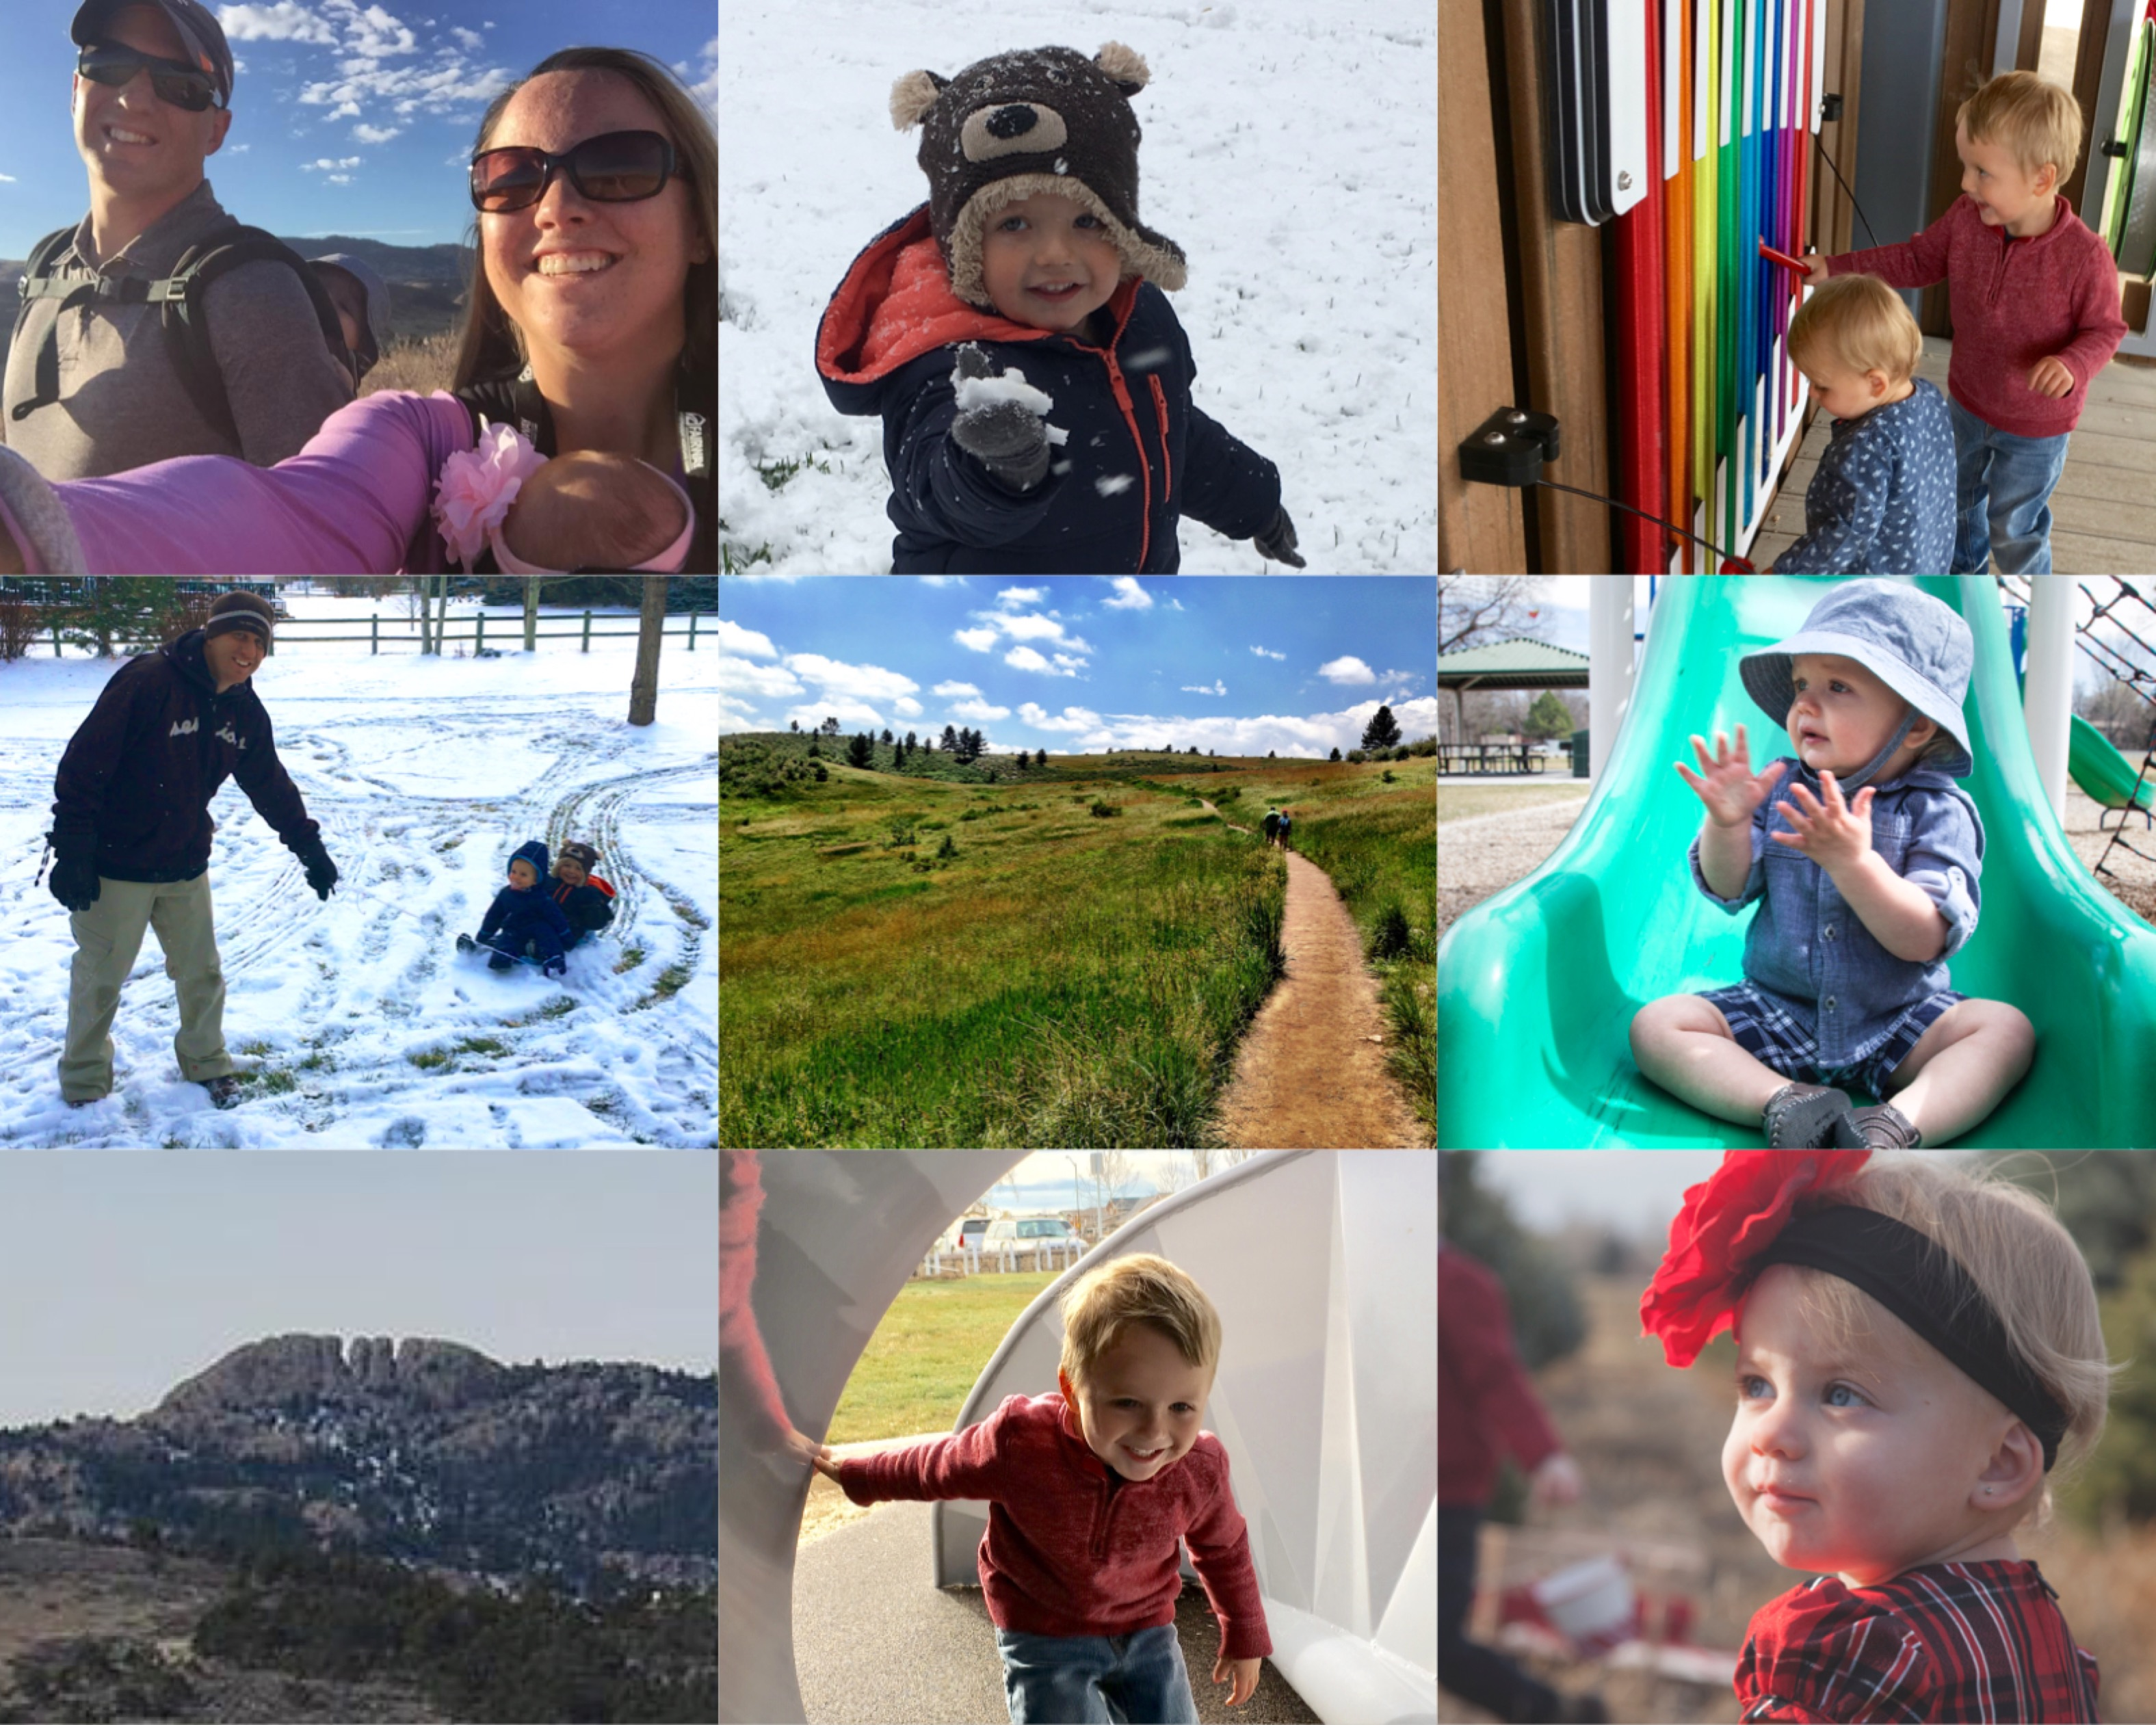 My Fort Collins Giveaway | Parks, family, children, playing in the snow, Fort Collins, home | Real Estate & Lifestyle in Northern Colorado, a blog by Joanna Gyrath, Realtor